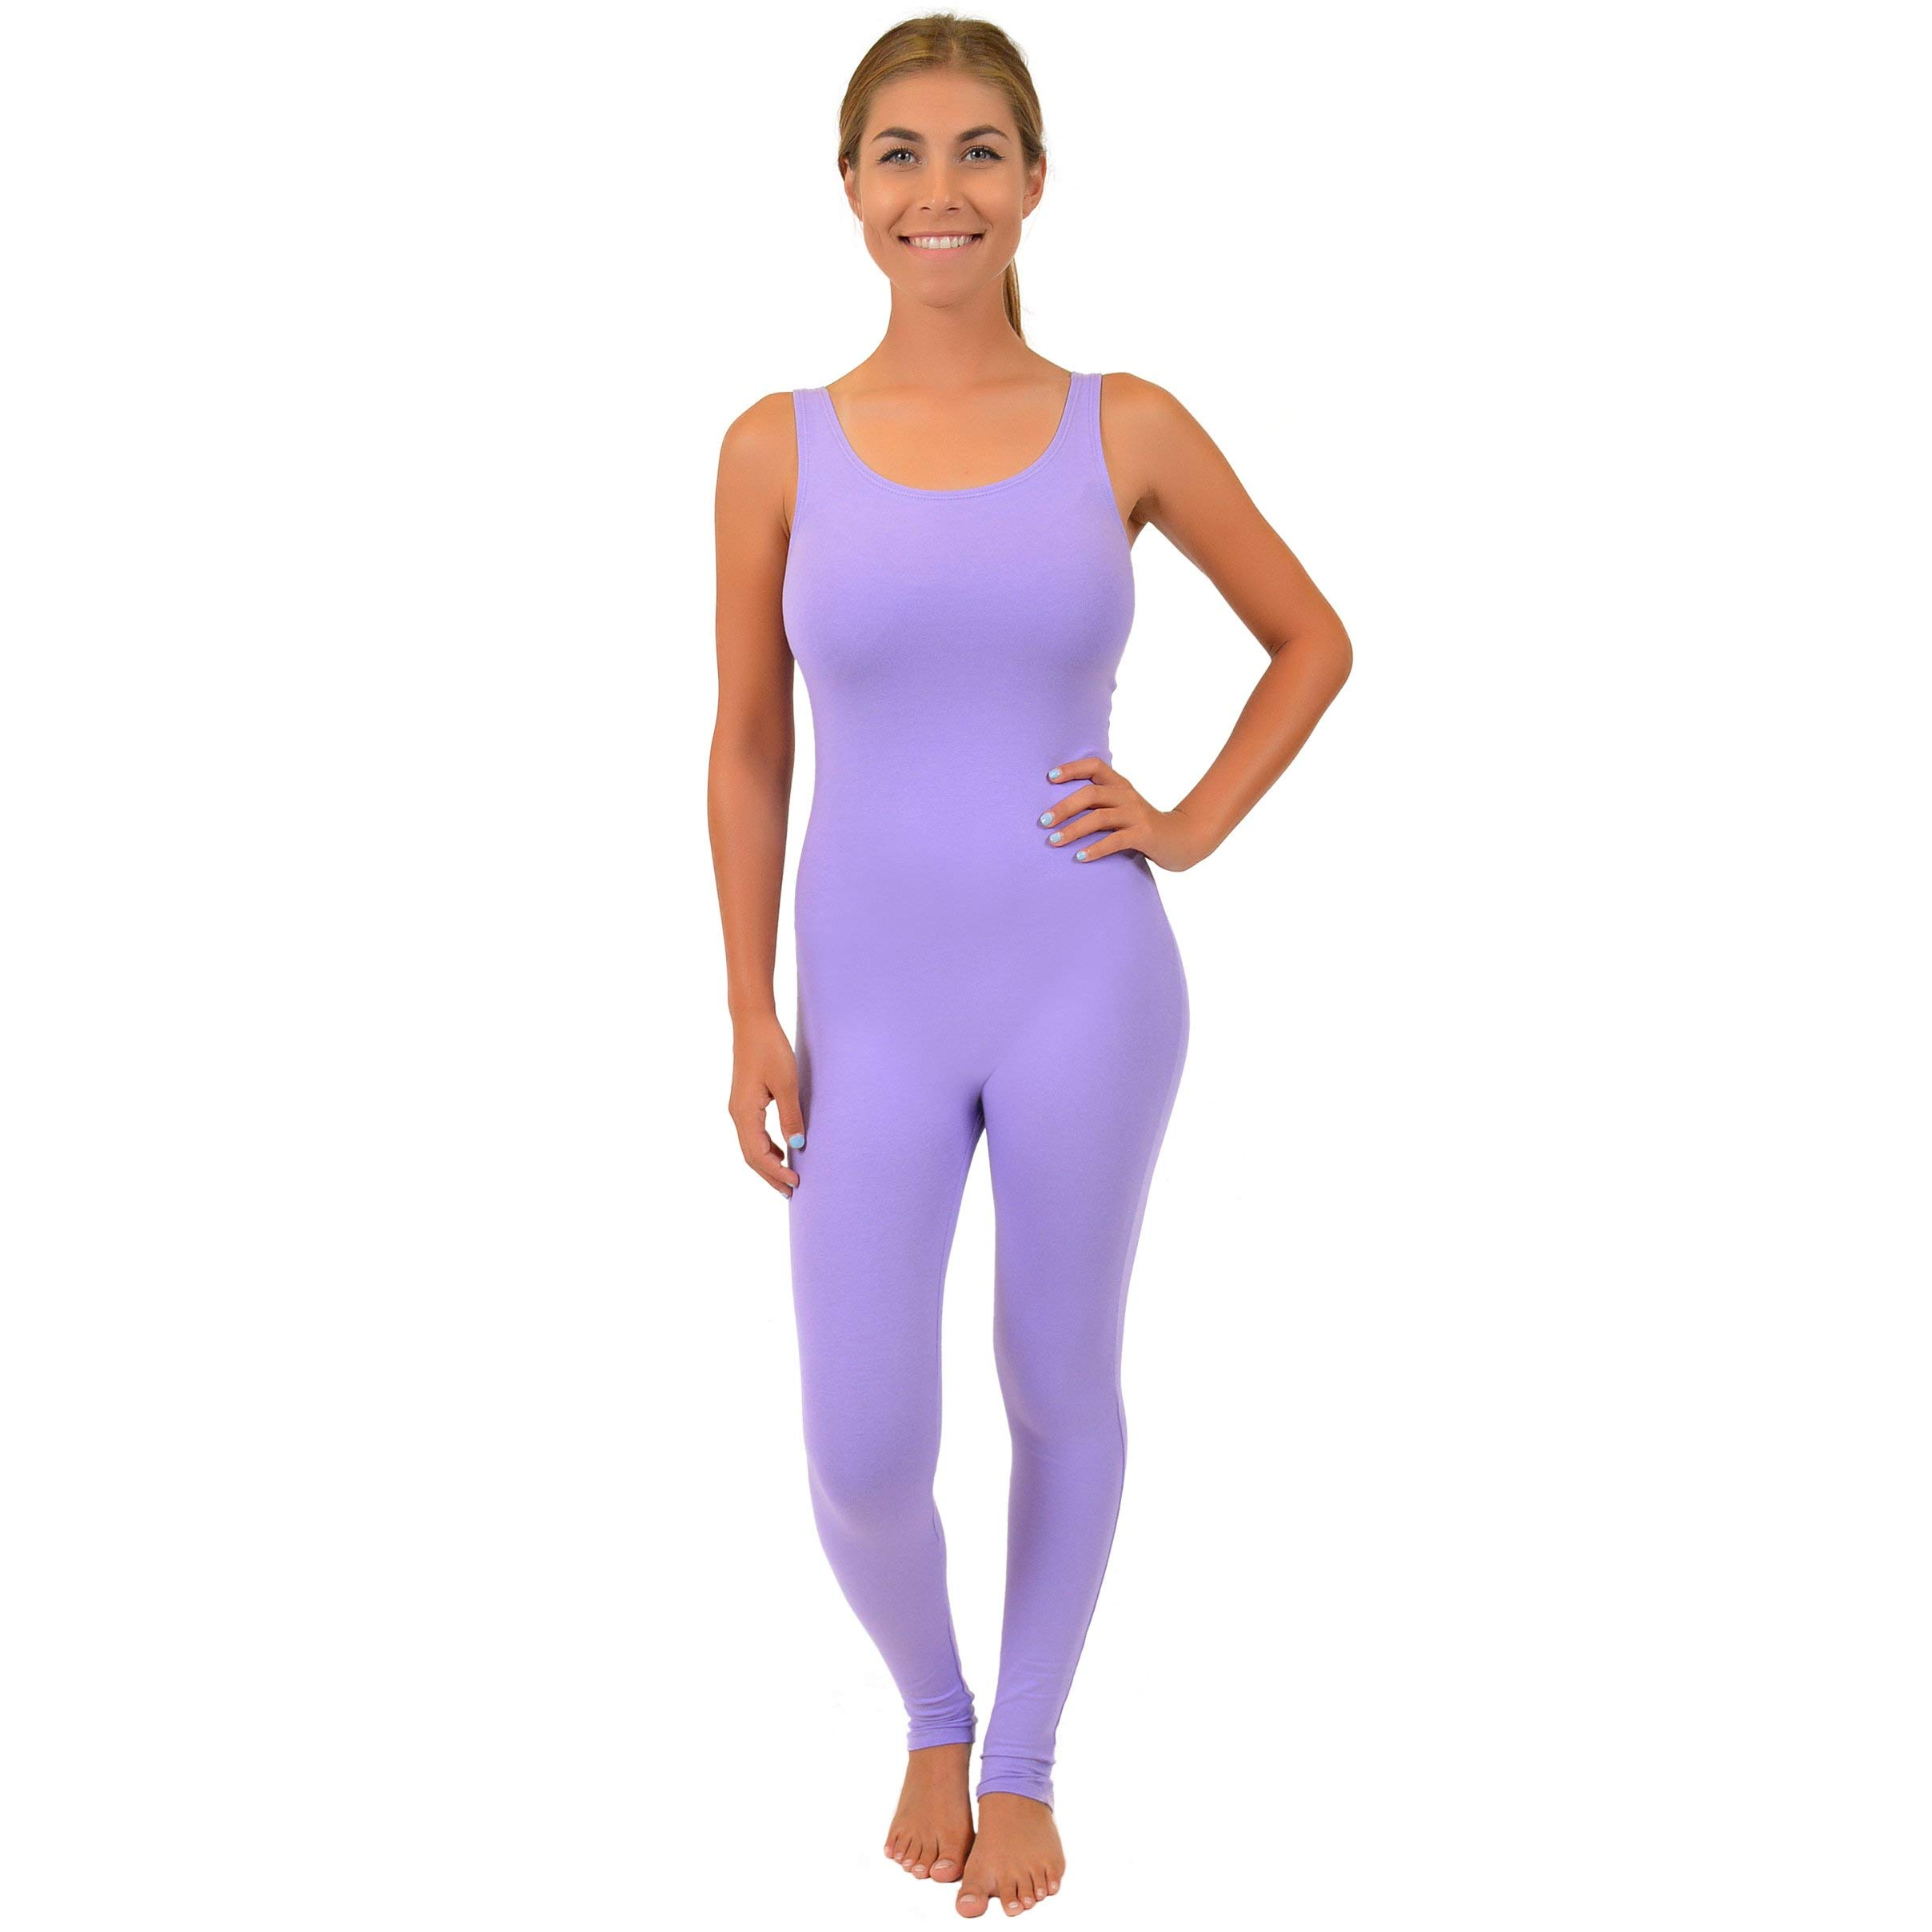 Stretch is Comfort Women's Comfortable Cotton Tank Unitard Lavender 2X by Stretch is Comfort